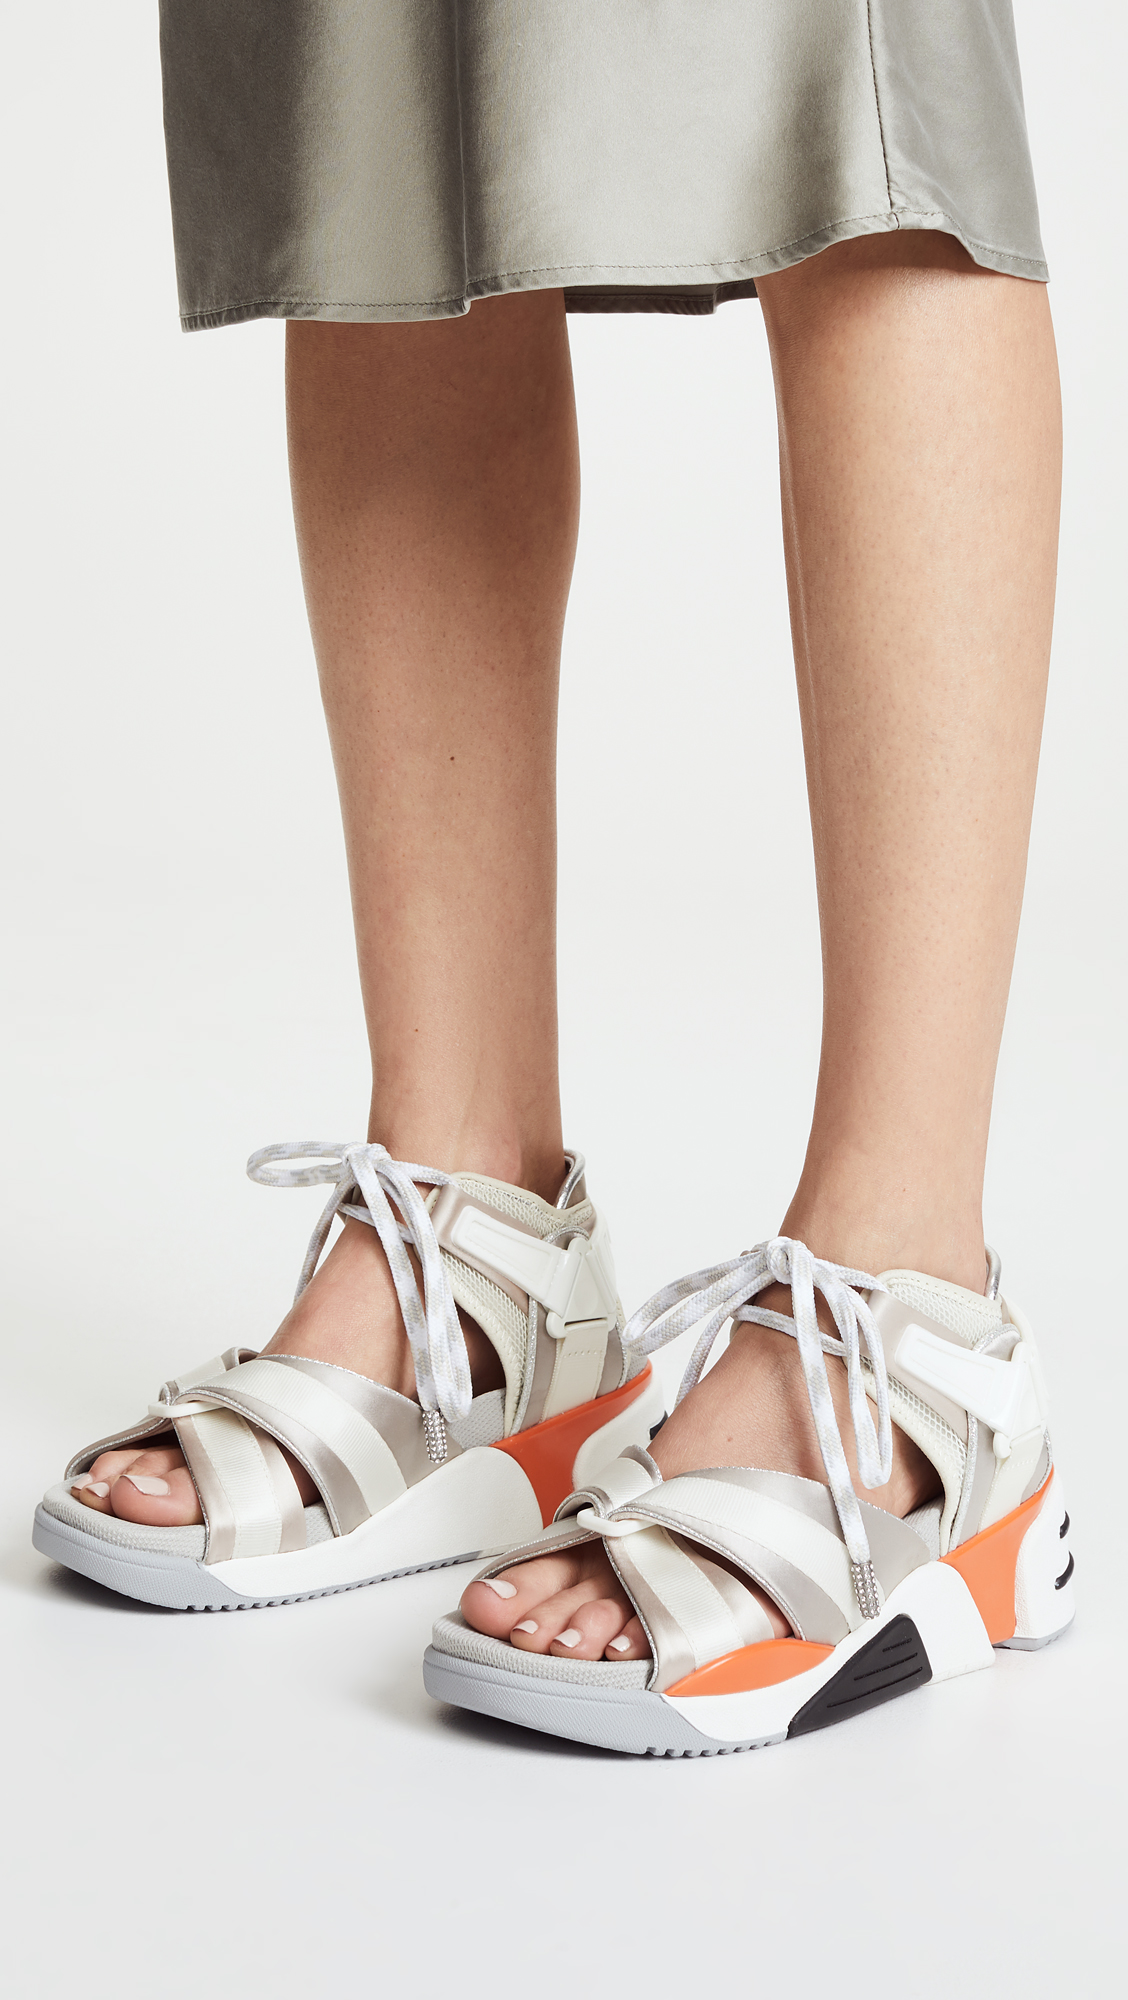 Somewhere sport sandals Marc Jacobs